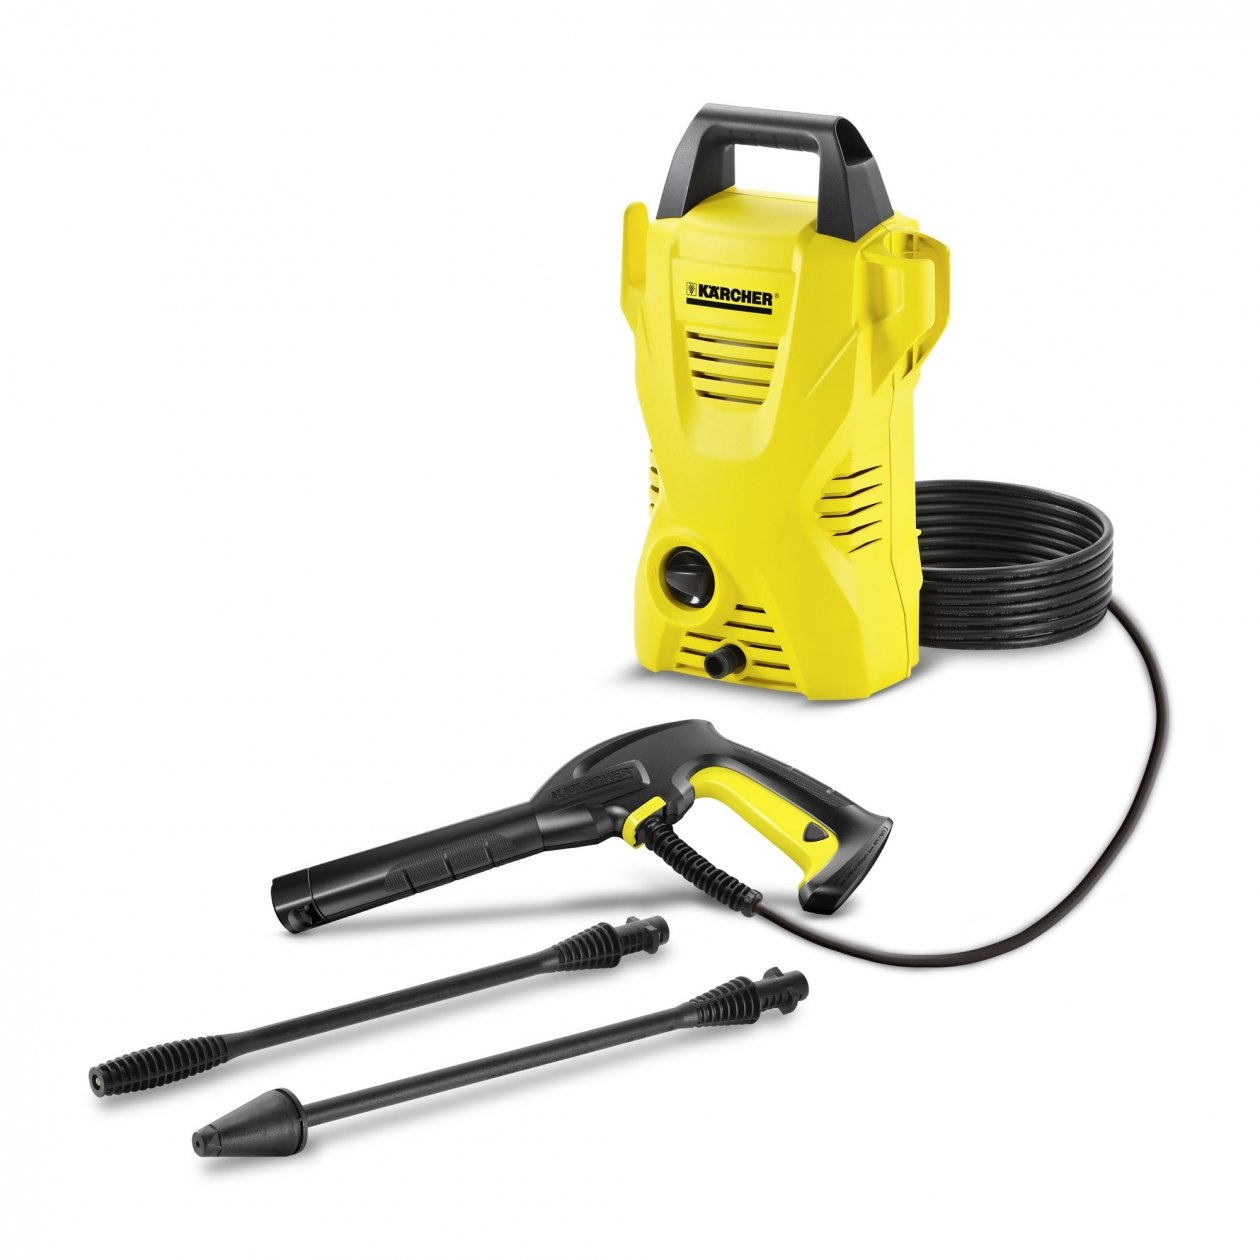 Amazon: Karcher K2 Compact Pressure Washer (Yellow) @ Rs.5,959/-